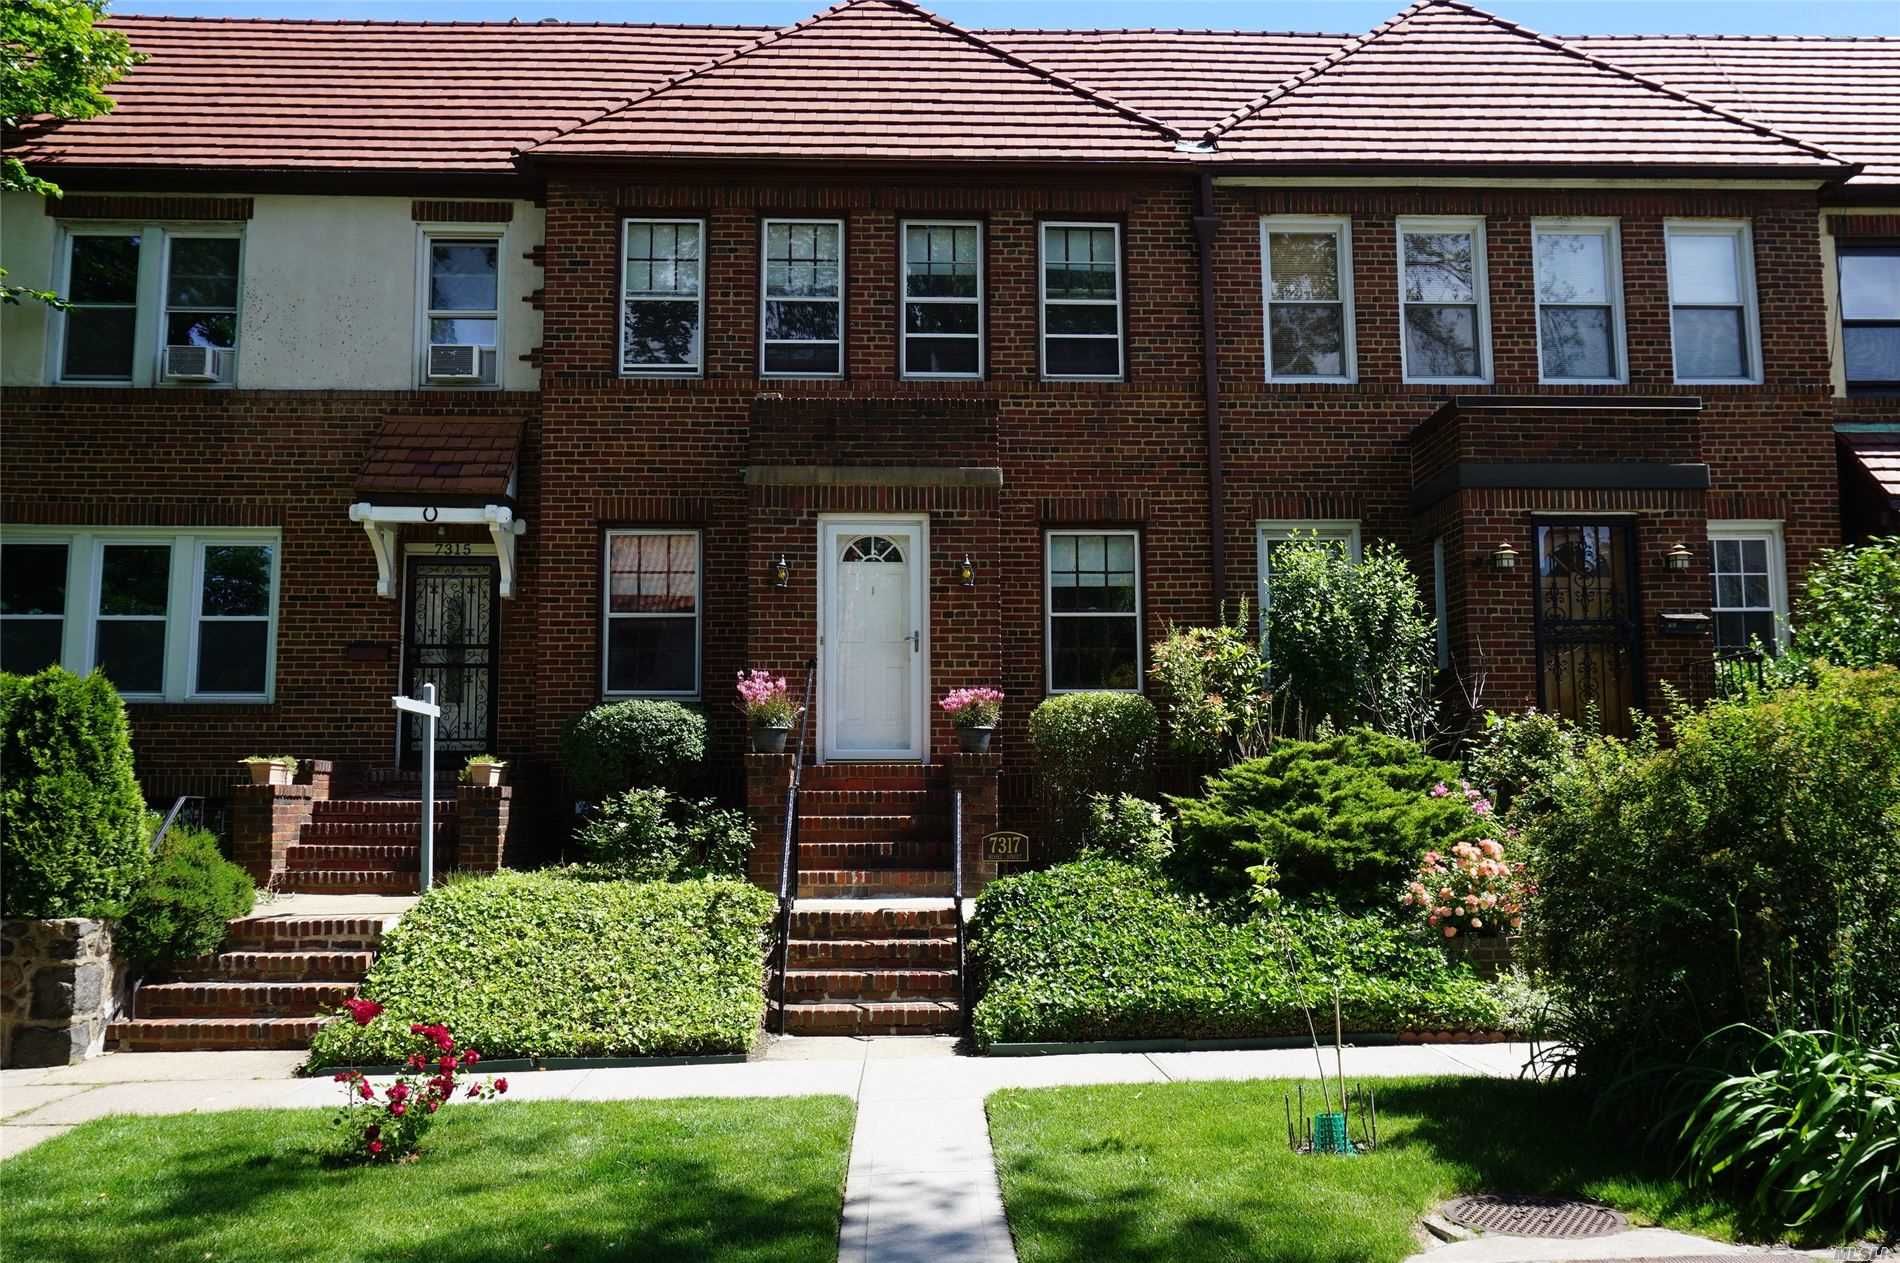 Great Opportunity: Elegant 1-Family brick bordering Forest Hills Gardens. Features lots of natural sunlight, abundant character, high ceilings, and old-world charm. Original owner. 1-car garage. Close to subway/LIRR. 15 minutes to Penn Station. Convenient to shopping, schools, movie theatre, and restaurants.